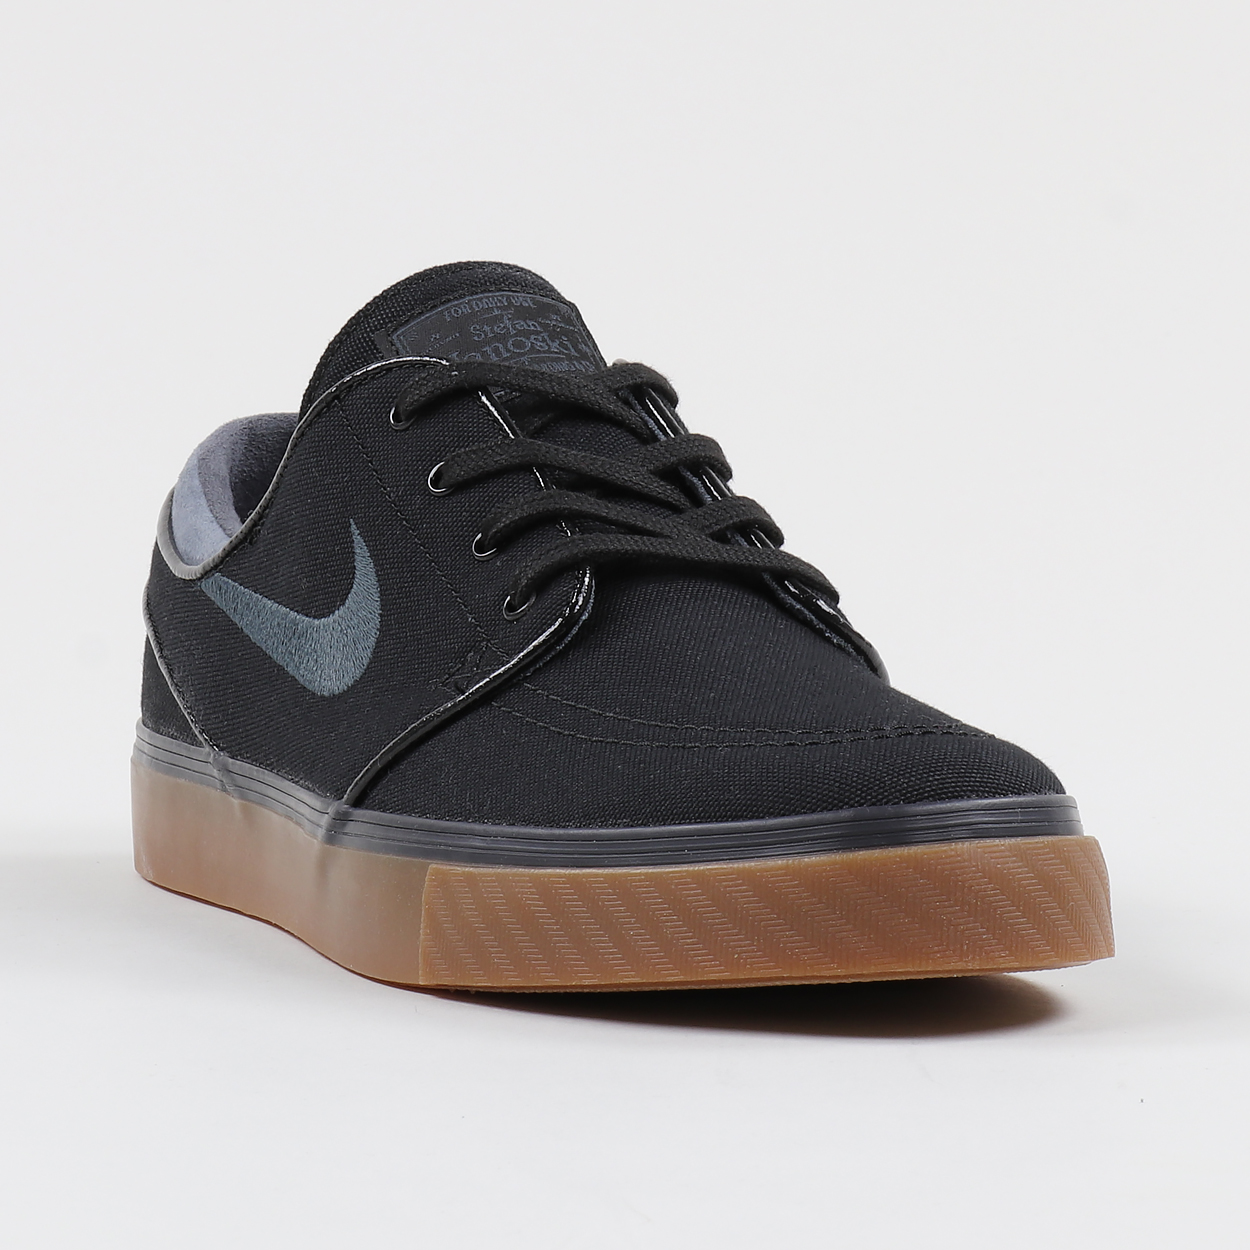 new style 28173 8931a One of Nike SB s most notable silhouettes, the Stefan Janoski is an  absolute killer shoe. Tough canvas uppers protect your toes and a Zoom unit  protects ...